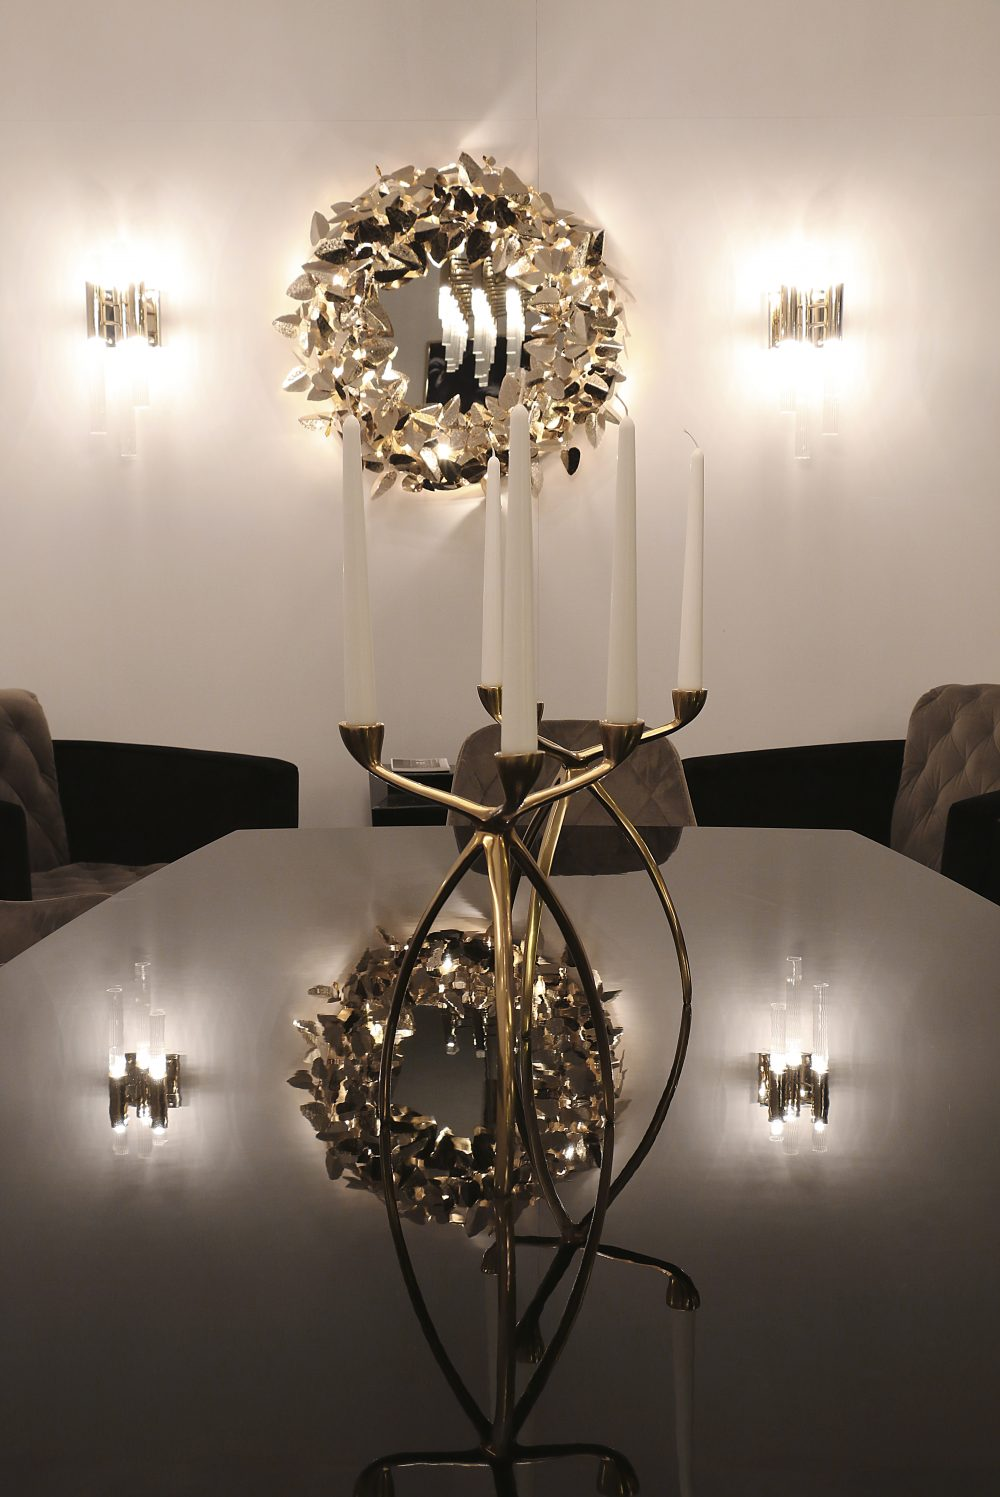 How to Decorate With Gold in Your Home 02 how to decorate with gold How to Decorate With Gold in Your Home How to Decorate With Gold in Your Home 02 e1493389482453